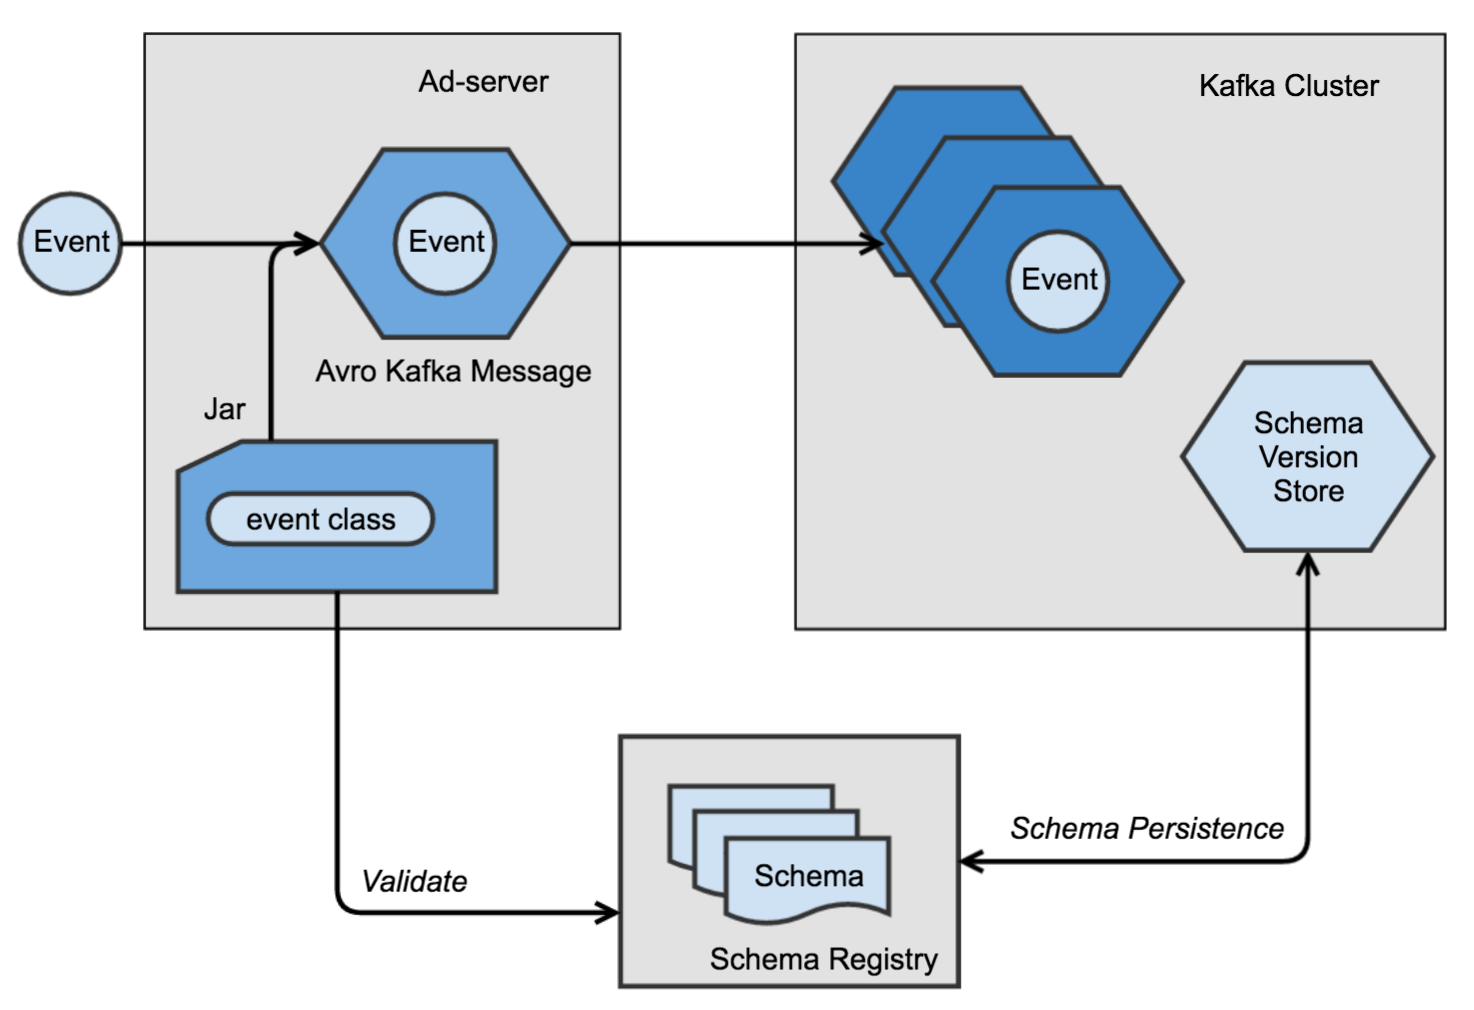 Produce Kafka Messages with Avro Schema